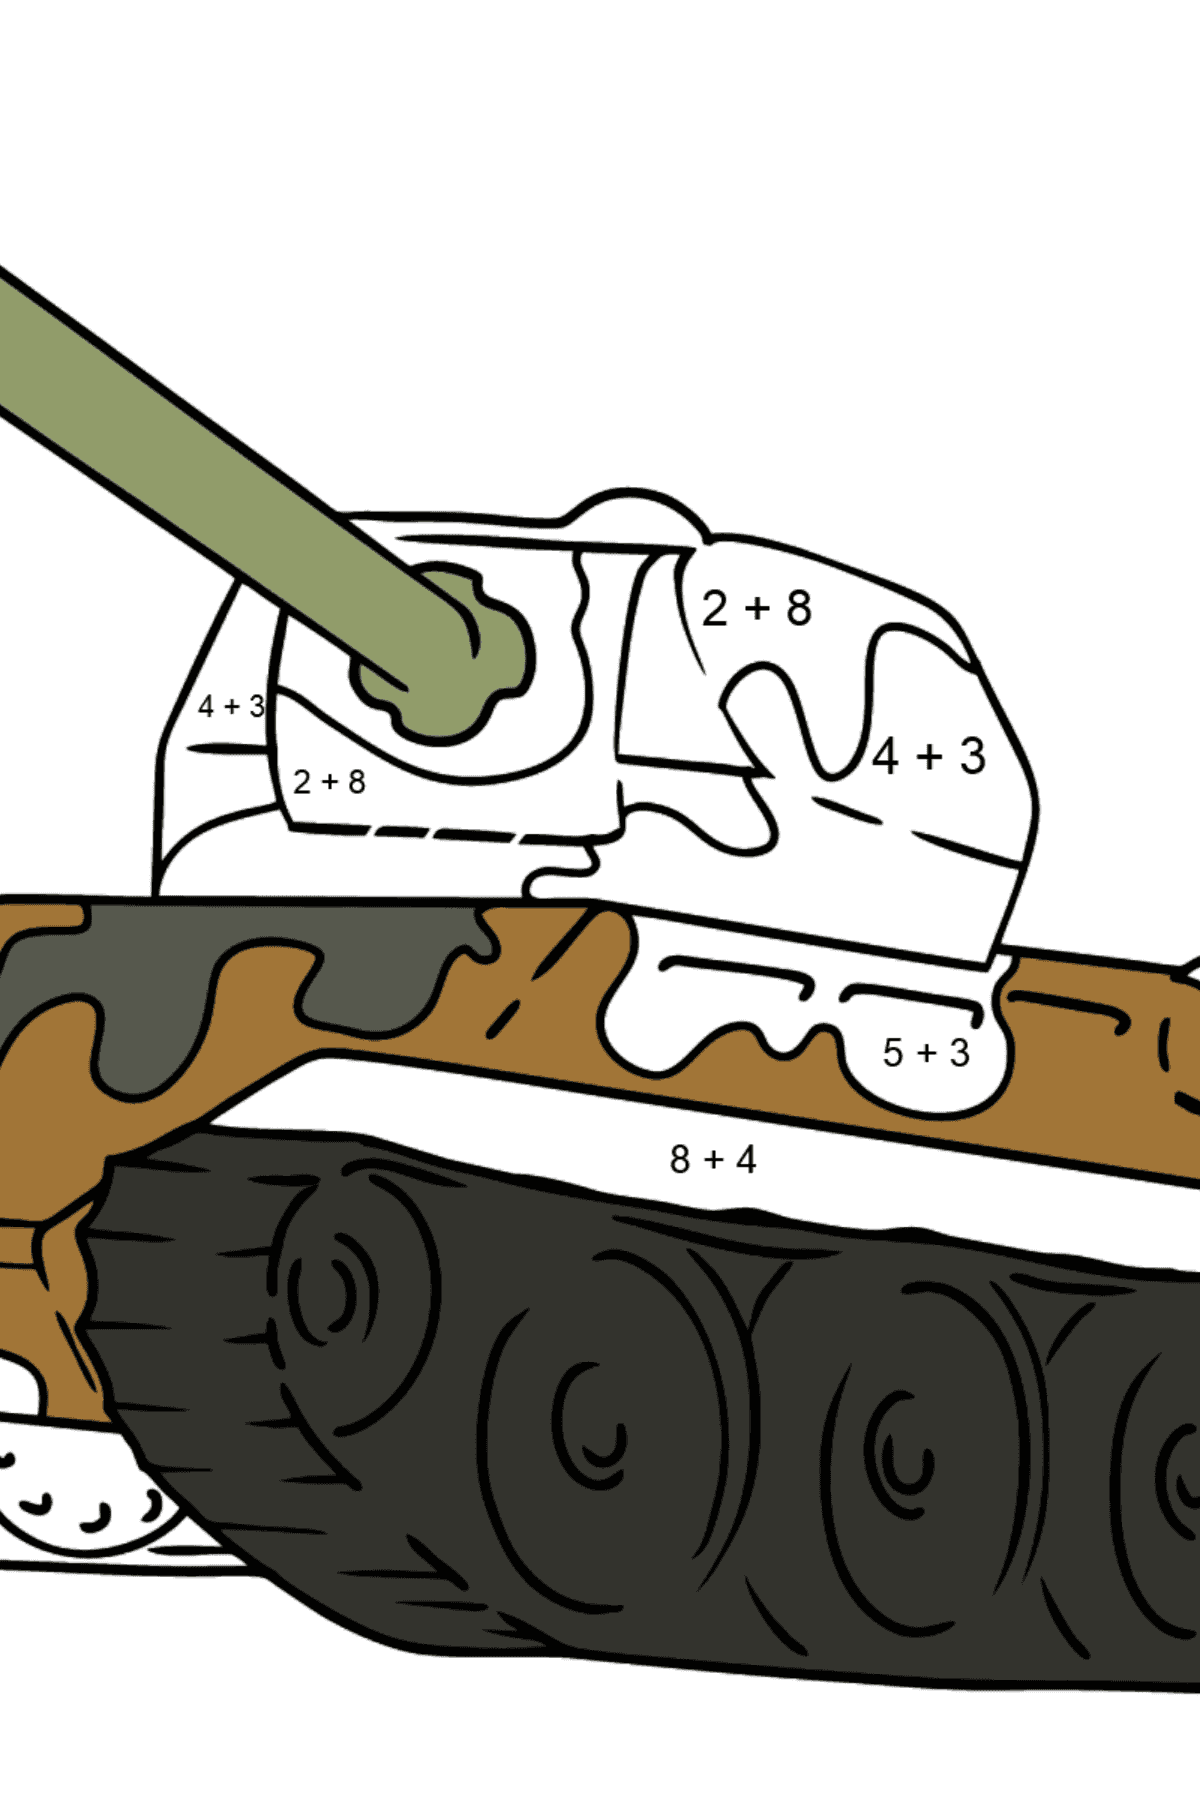 Tank with Anti-Aircraft Gun coloring page - Math Coloring - Addition for Kids